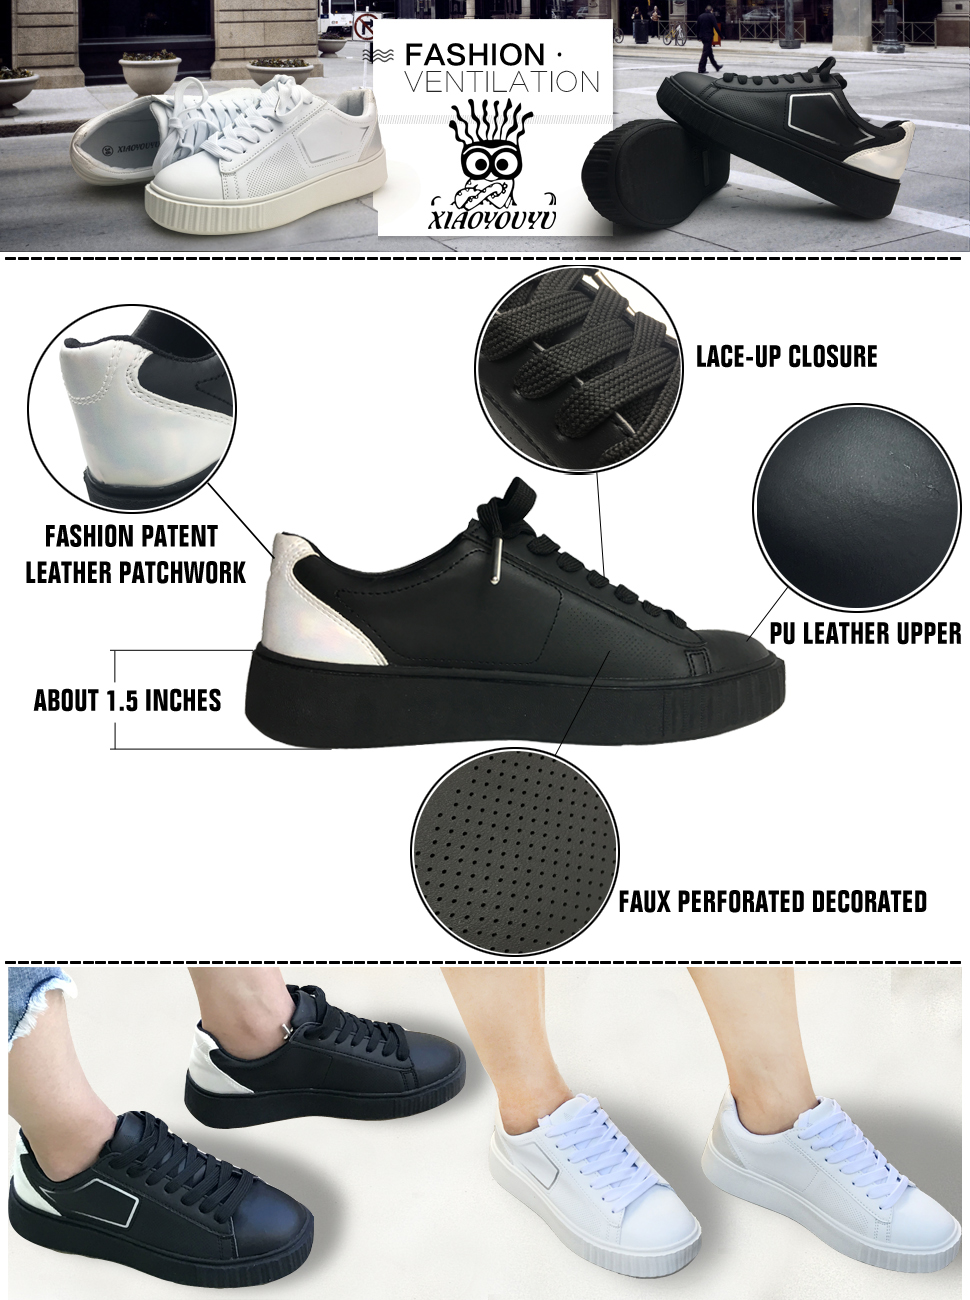 1c2cdbdb82 XiaoYouYu Fashion Sneakers For Women Faux Perforated Design PU Leather Lace  Up Flat Trainer Shoes